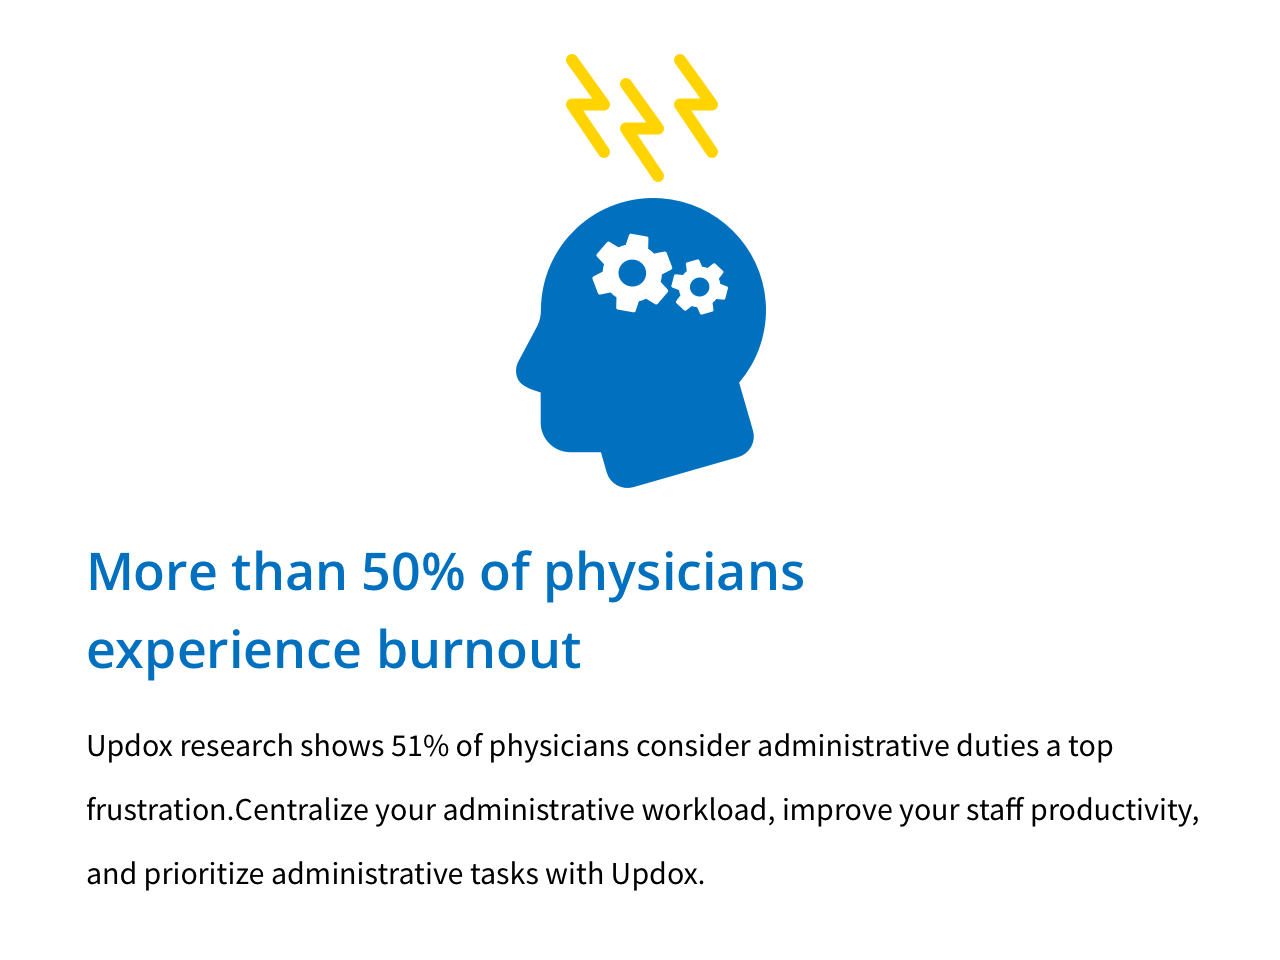 More than 50% of physicians experience burnout. Updox research shows 51% of physicians consider administrative duties a top frustration. Centralize your administrative workload, improve, your staff productivity, and prioritize administrative tasks with Updox.